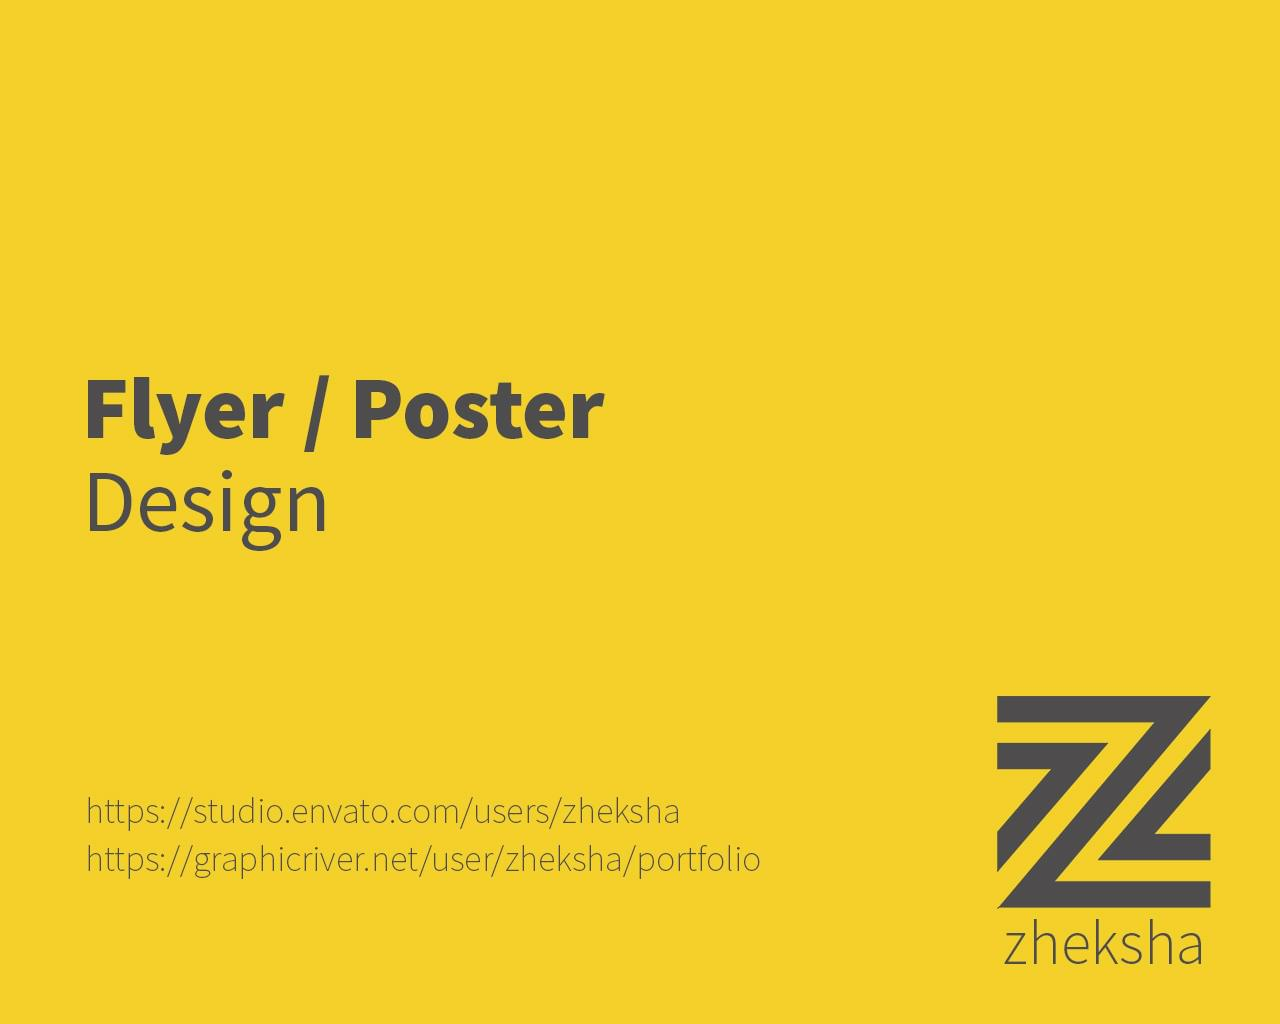 Flyer and Poster Designs by zheksha - 112464